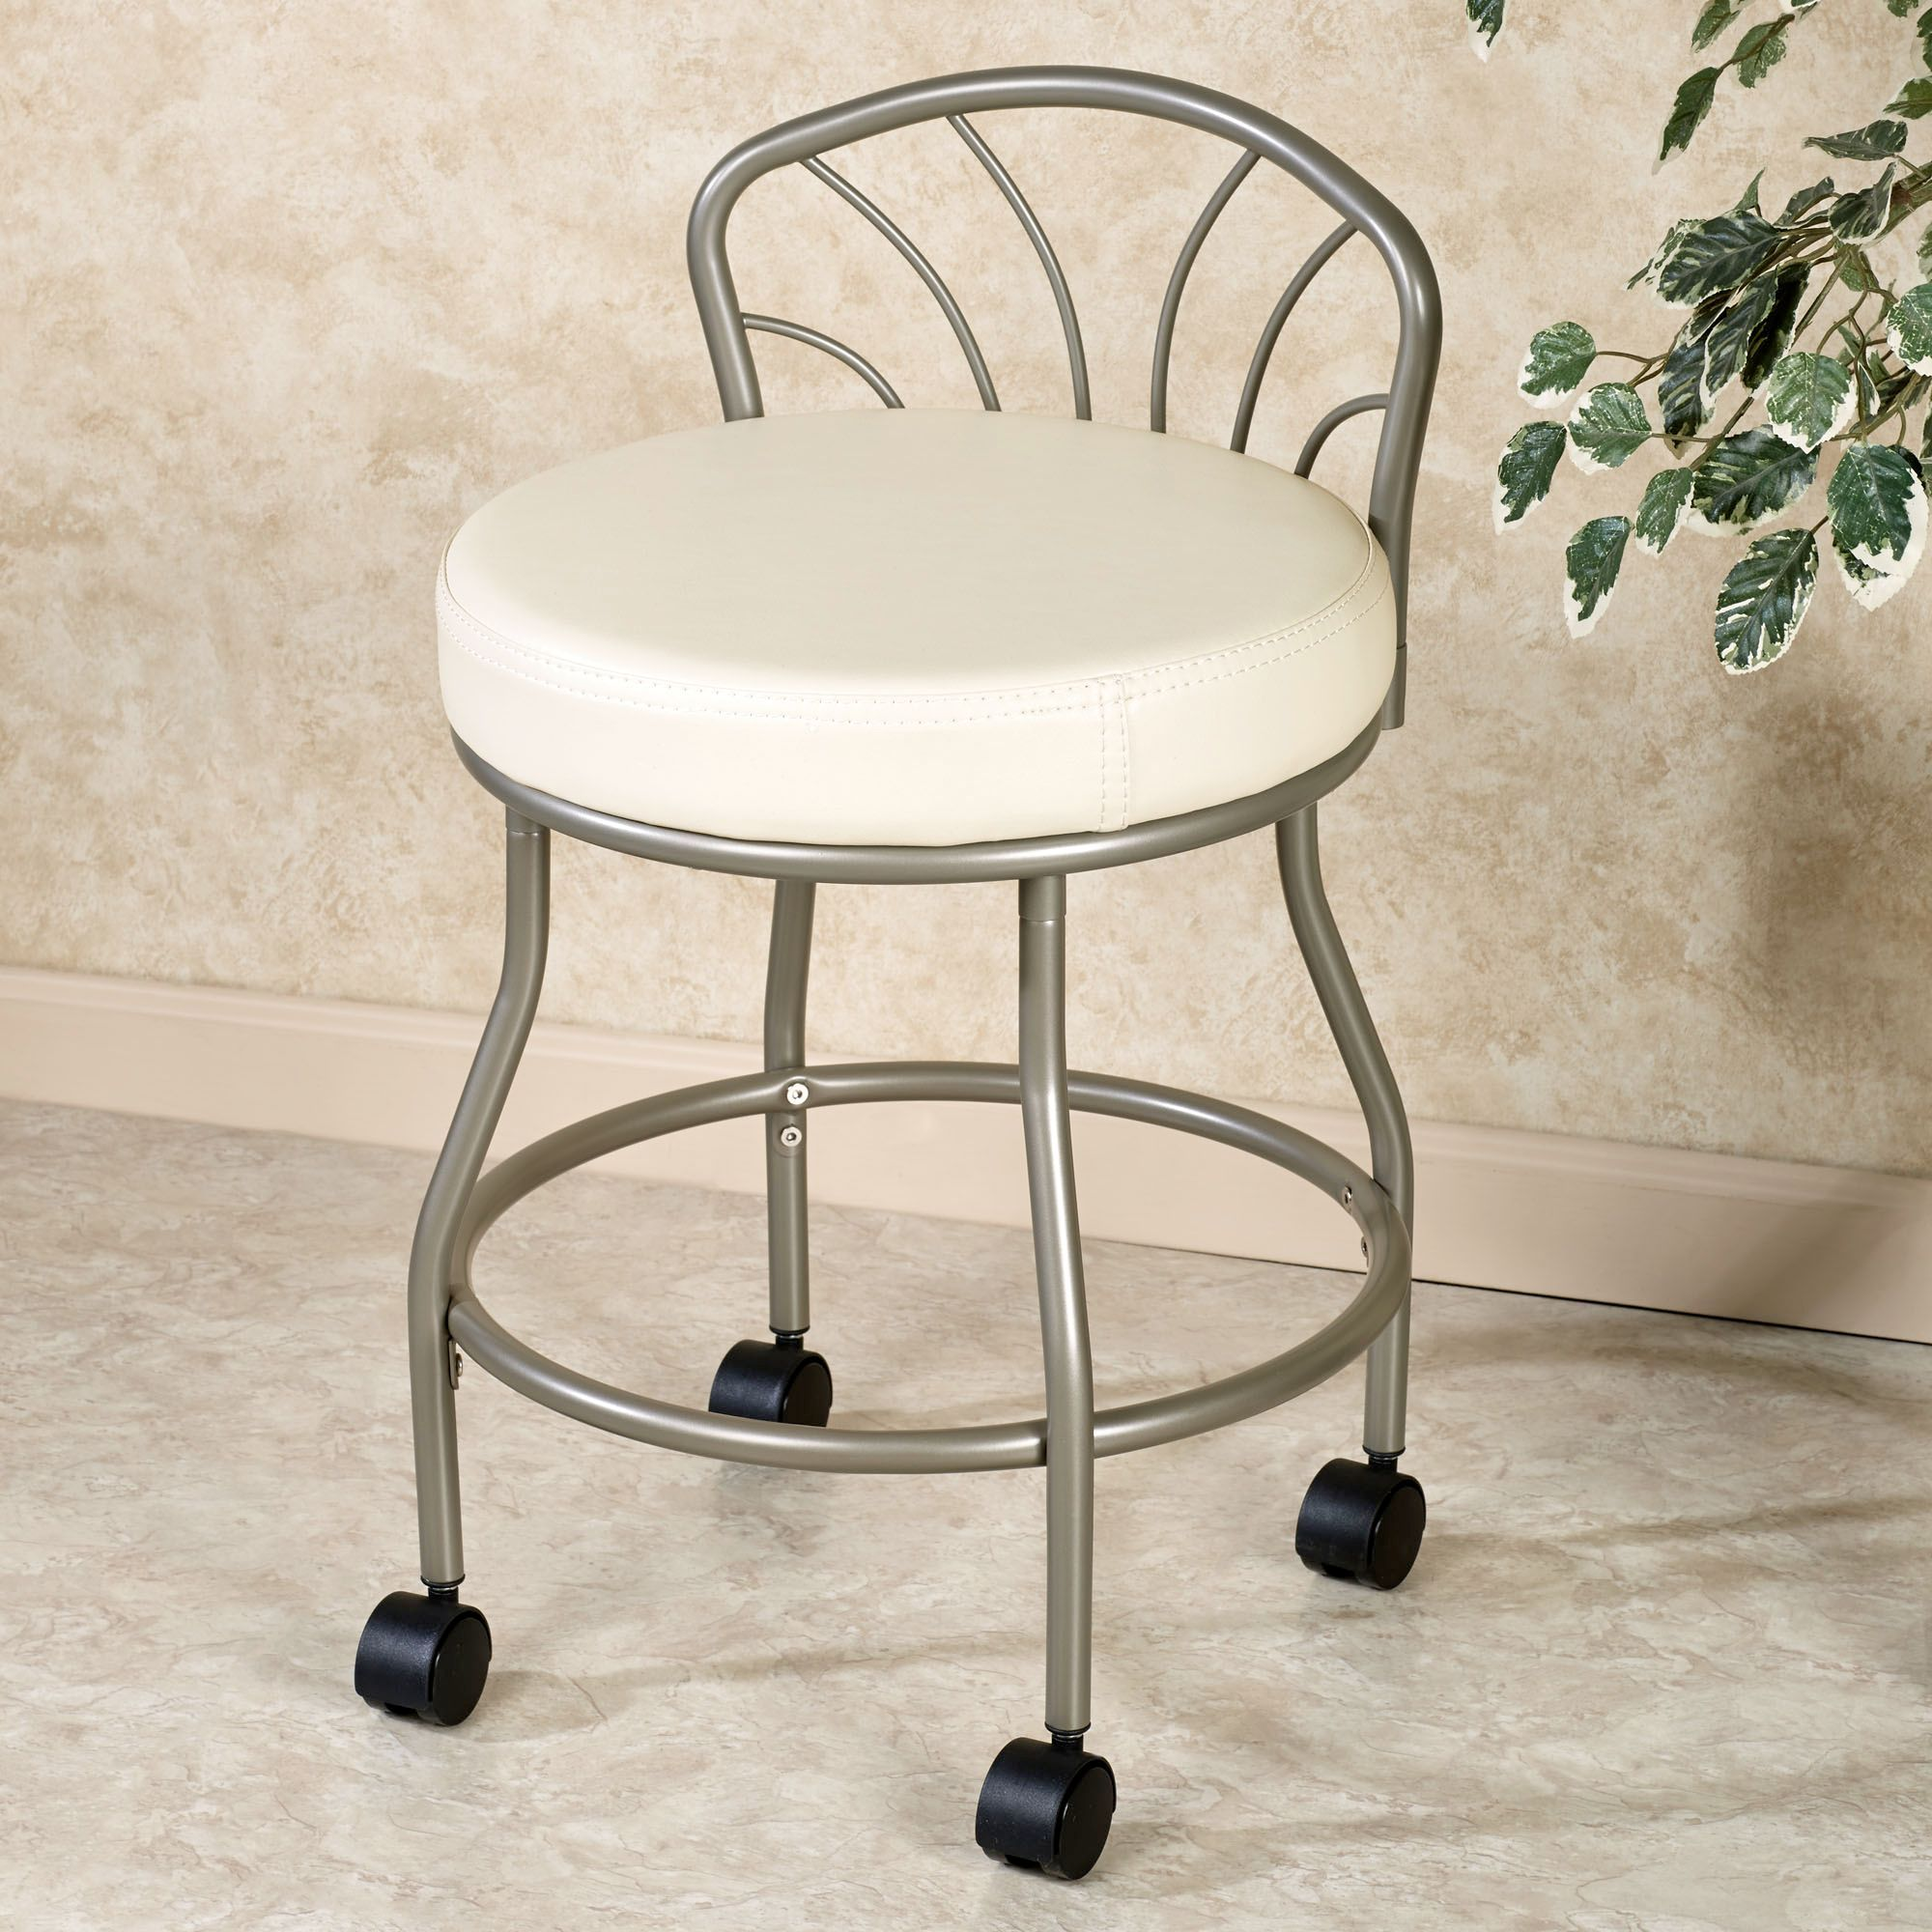 Flare Back Powder Coat Nickel Finish Vanity Chair with